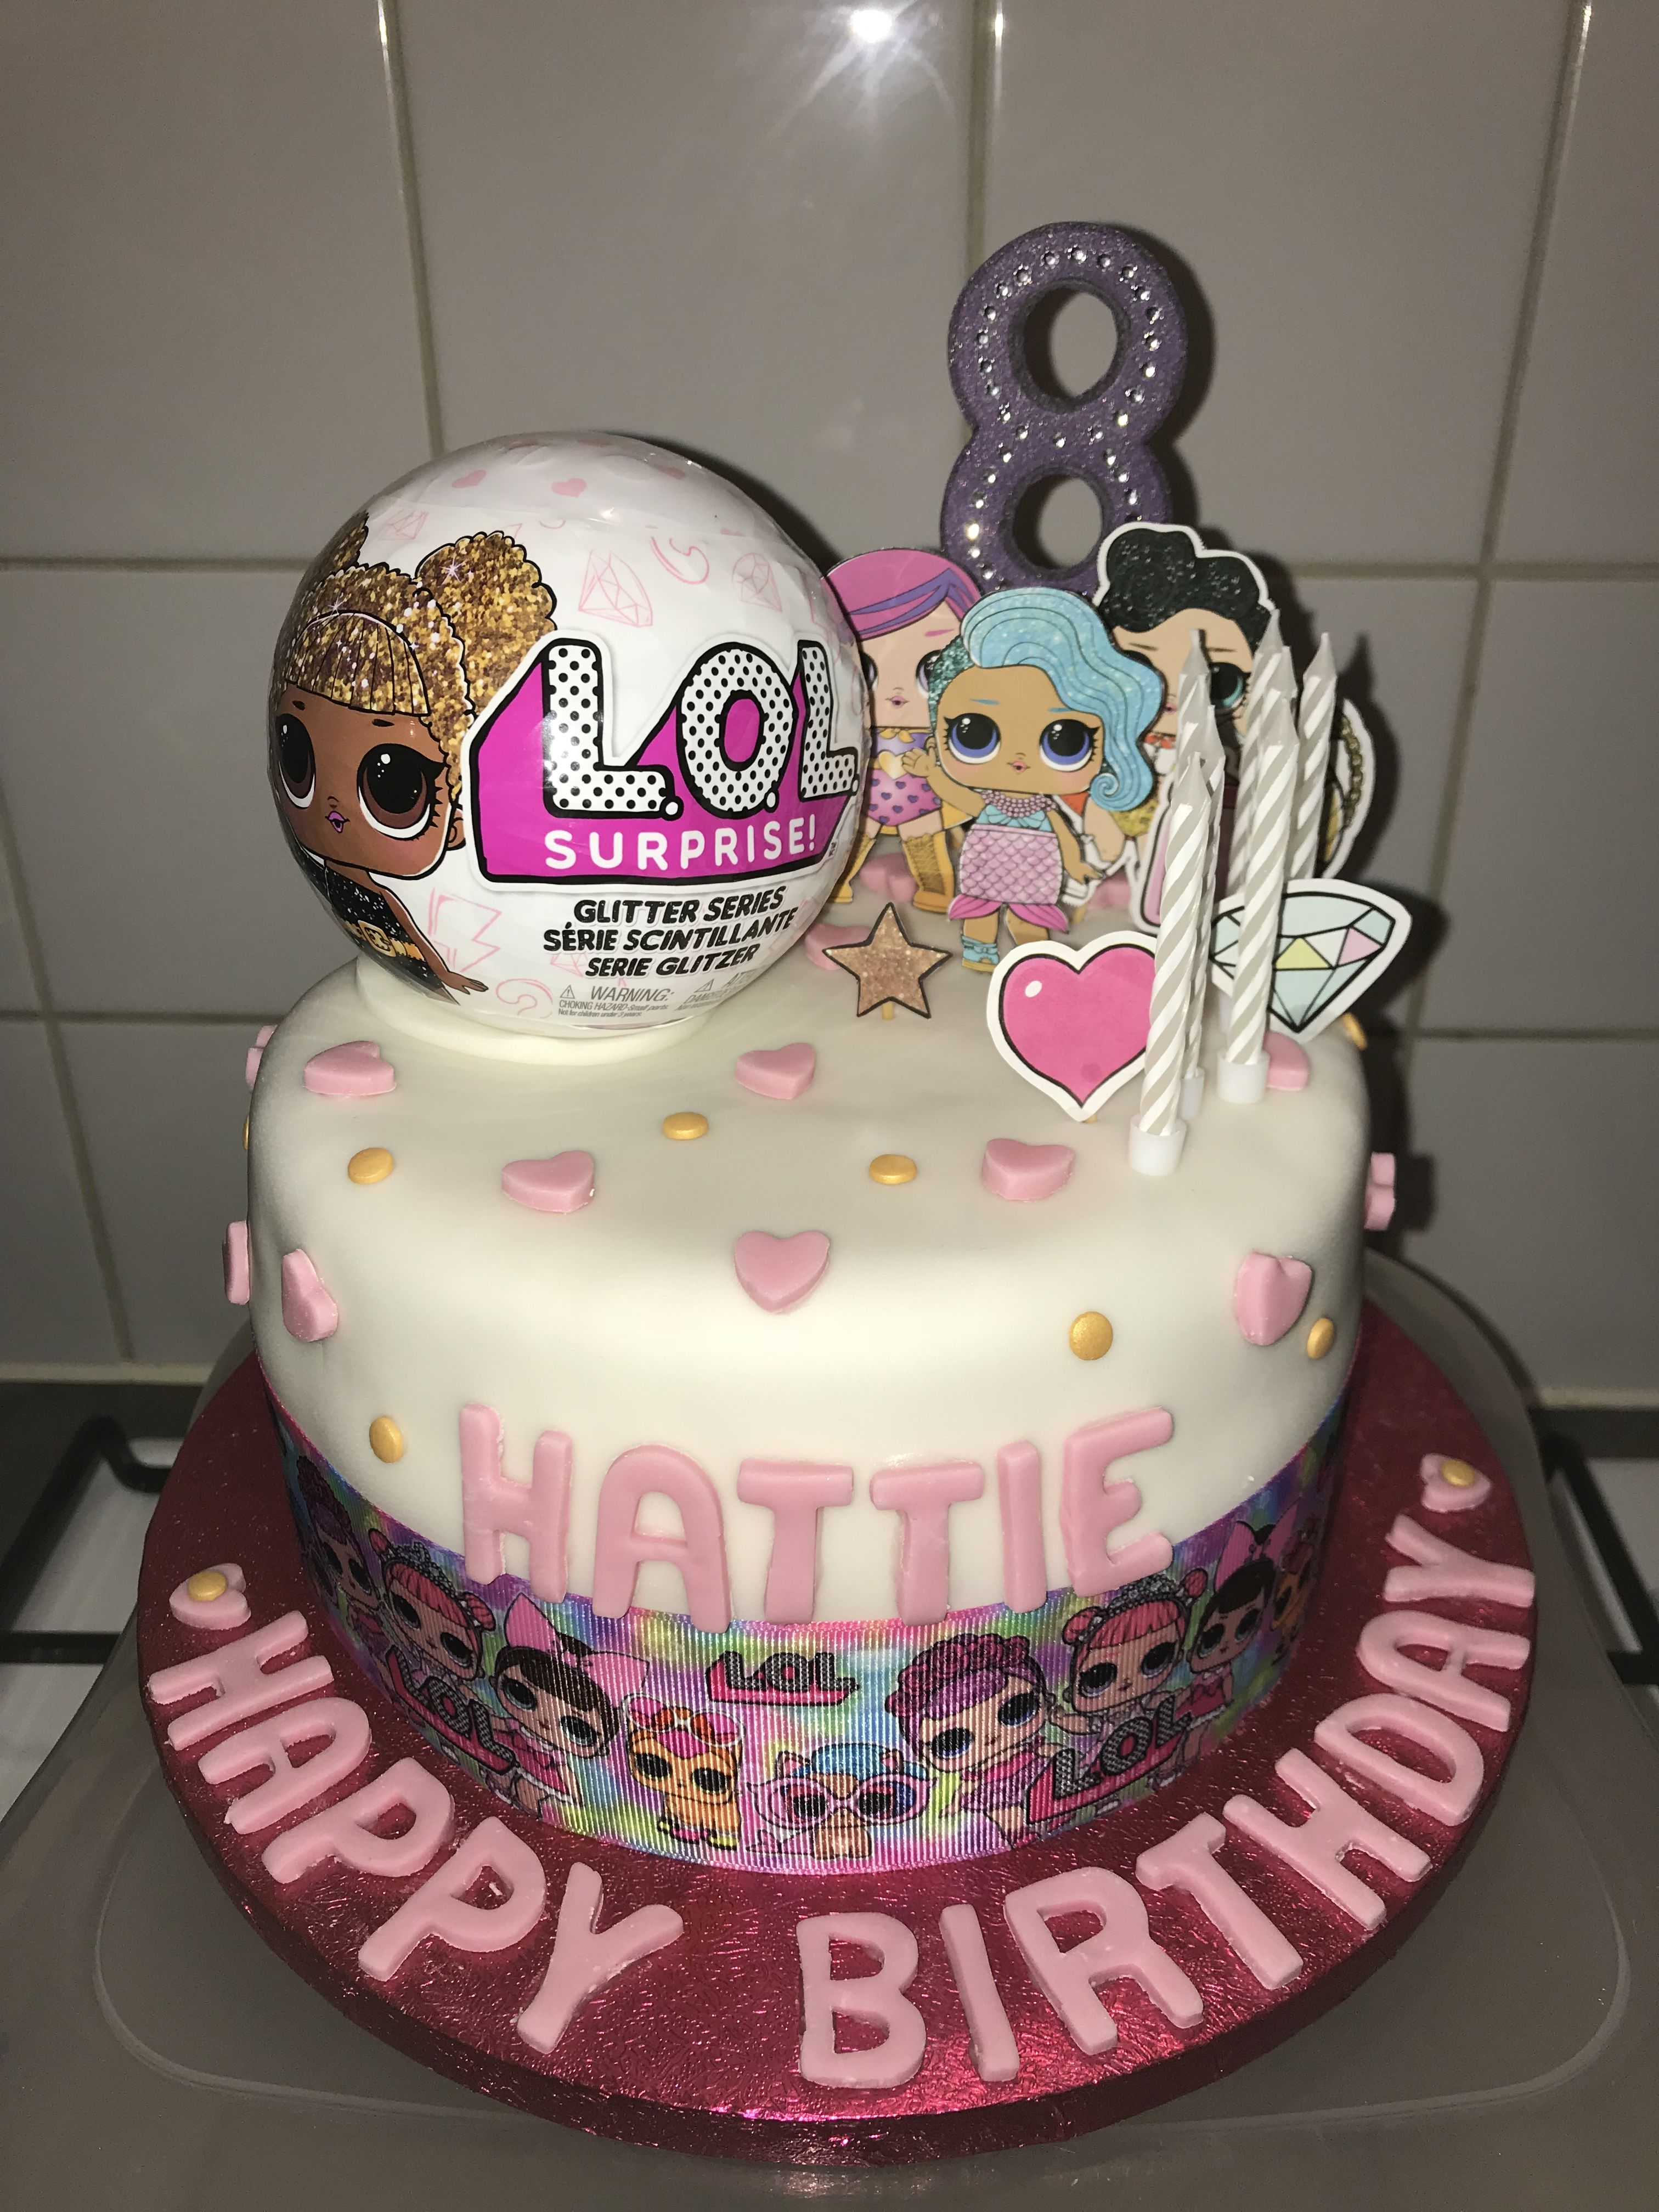 Lol Surprise Doll Birthday Cake With Hidden Lol Doll